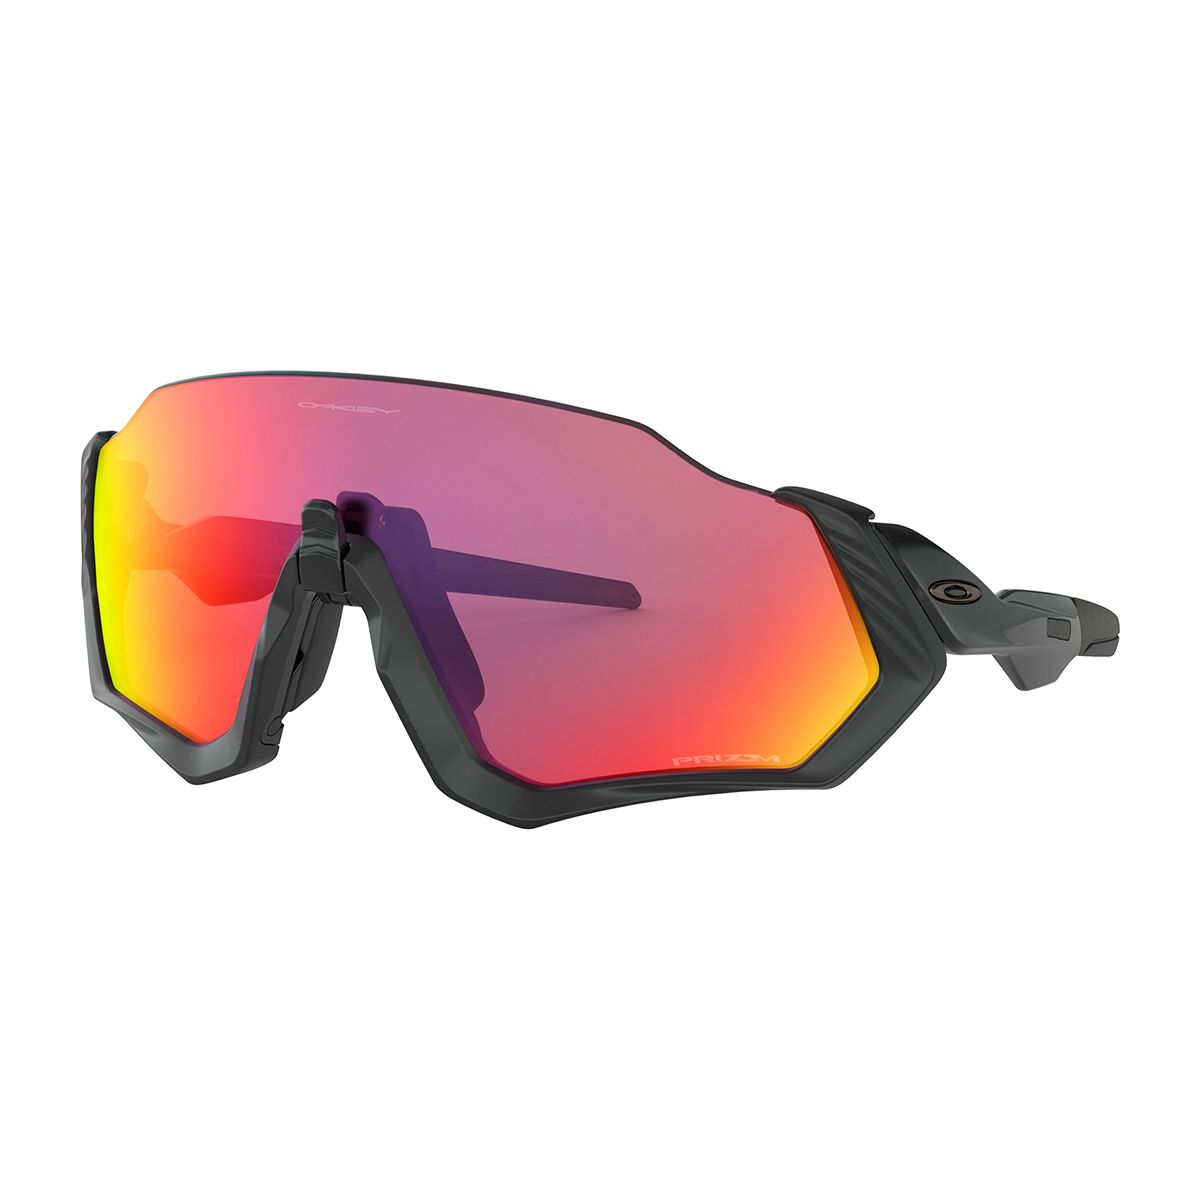 FLIGHT JACKET Sports Sunglasses